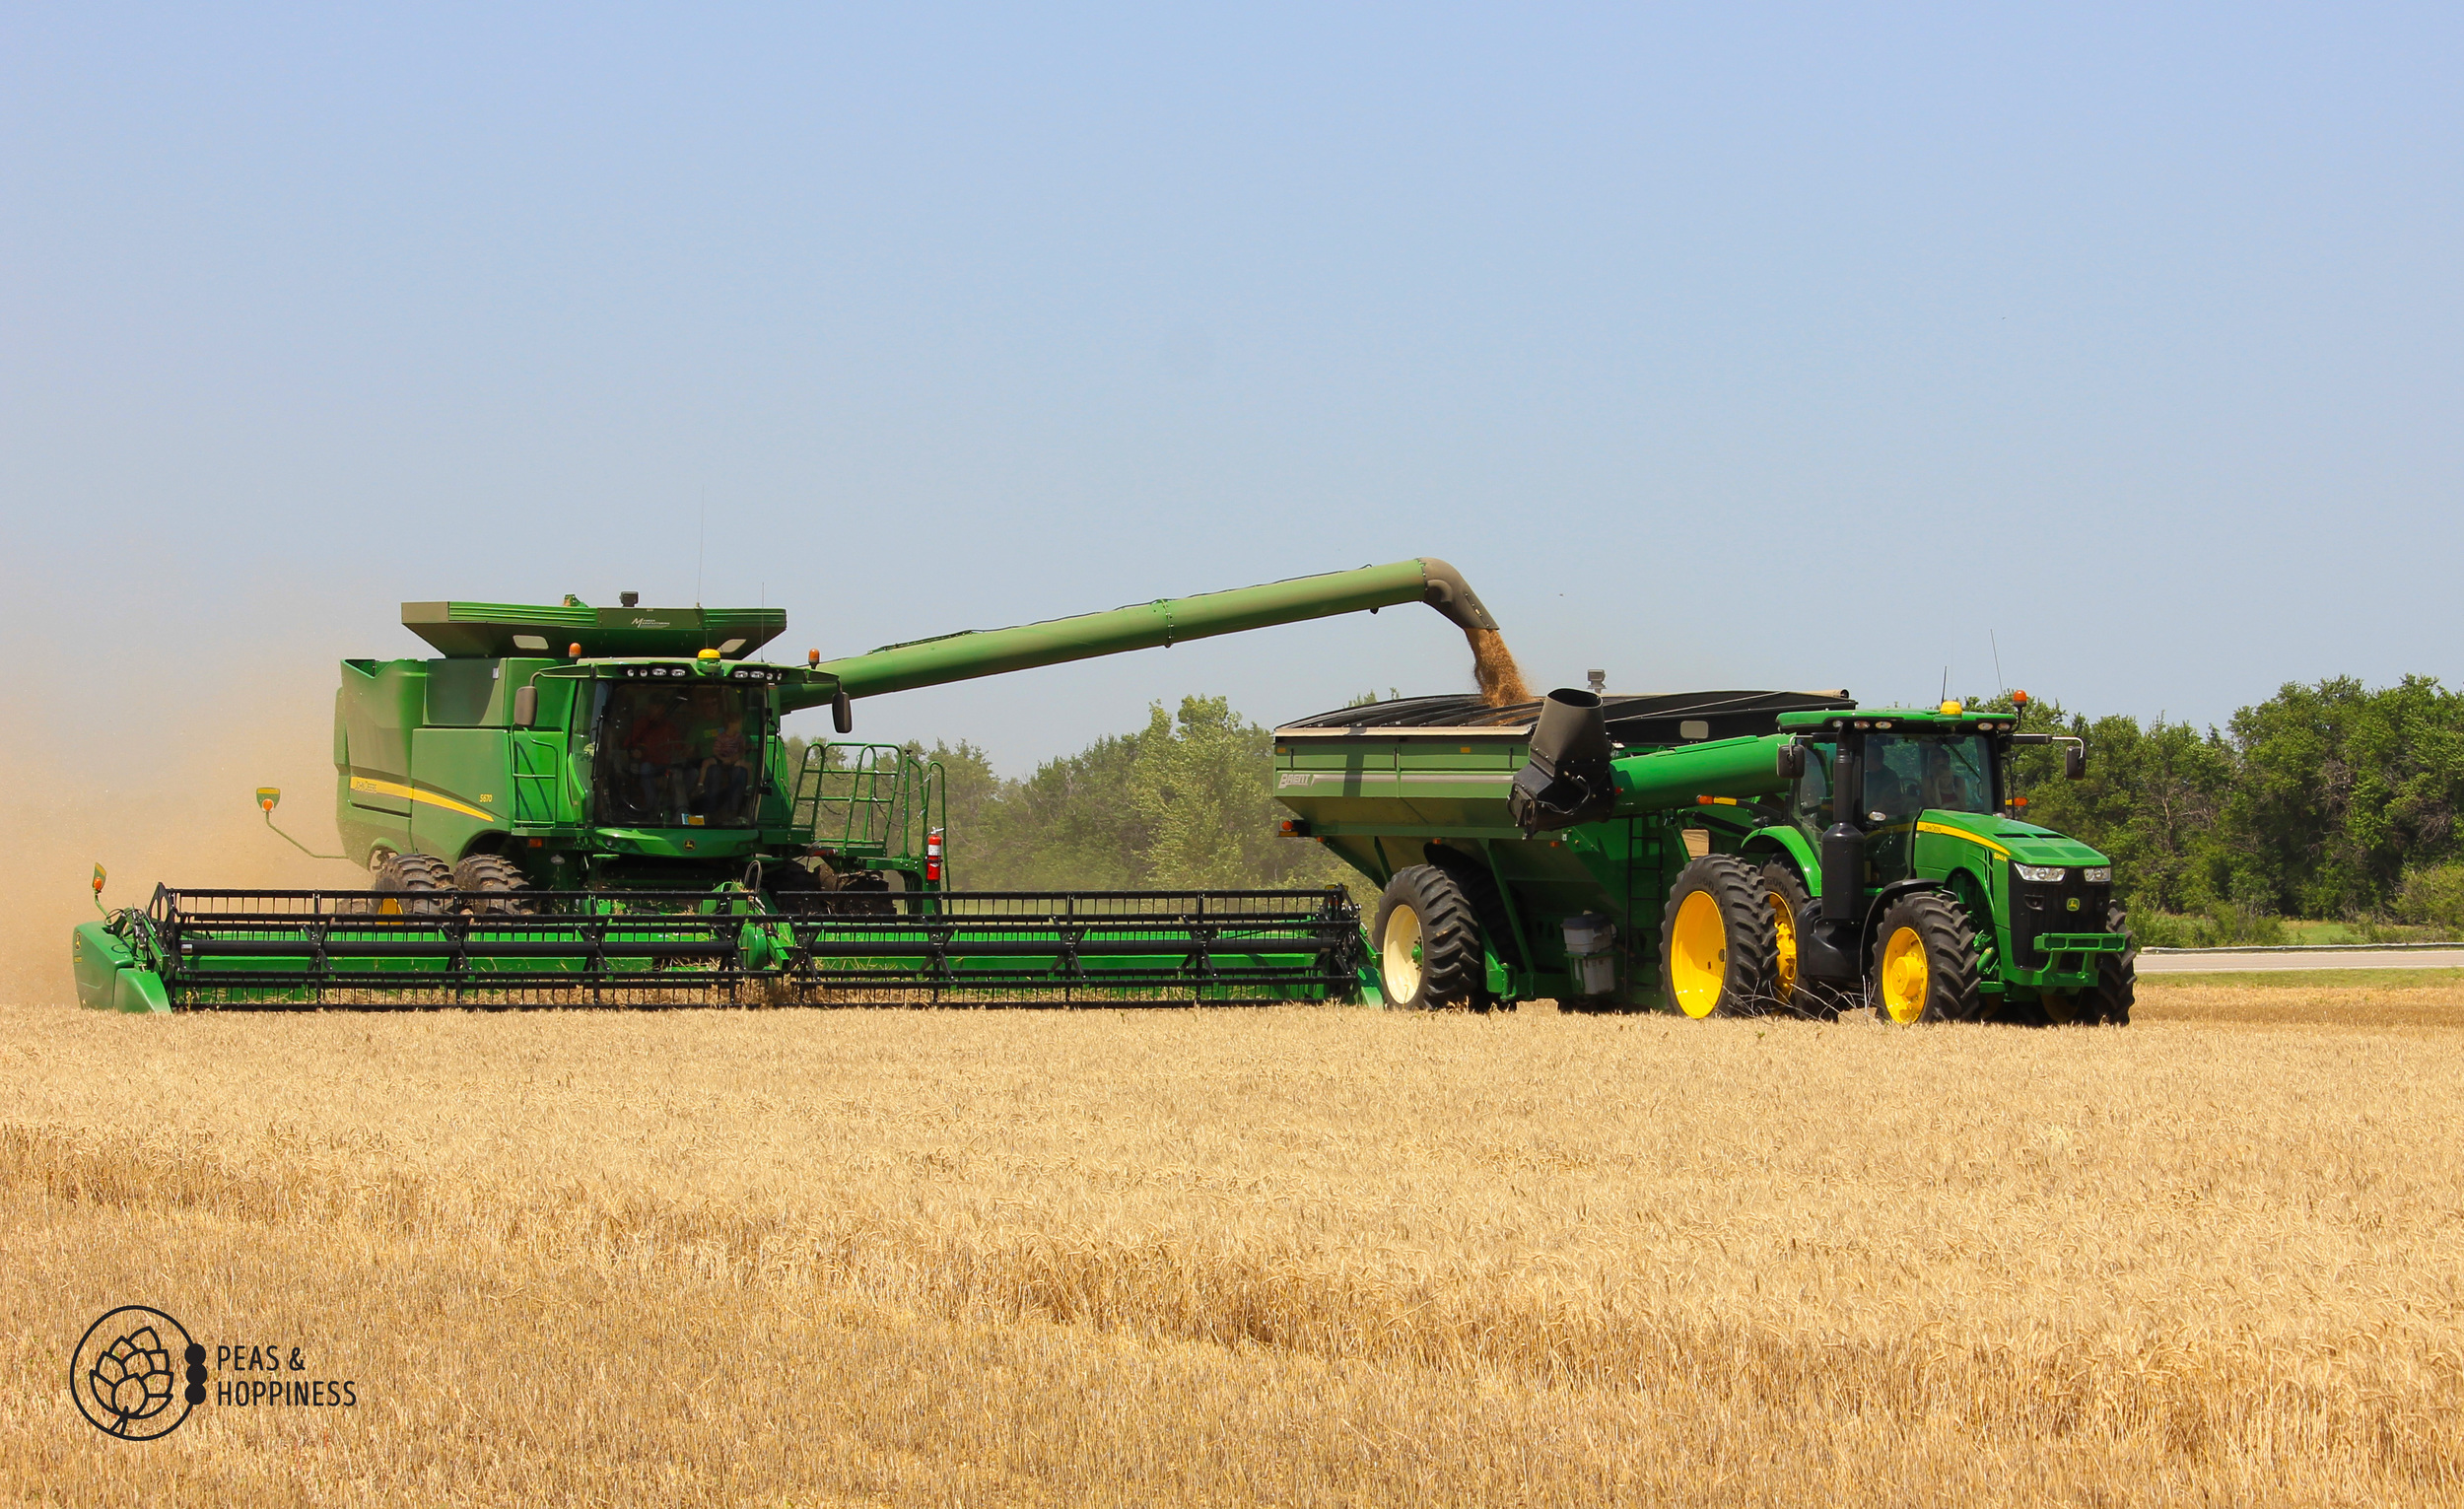 Combine unloading into the grain cart. Instead of stopping to take time to unload directly into the semi, unloading into a grain cart which then takes the grain to the semi allows Dad to continuously cut wheat without missing a beat.